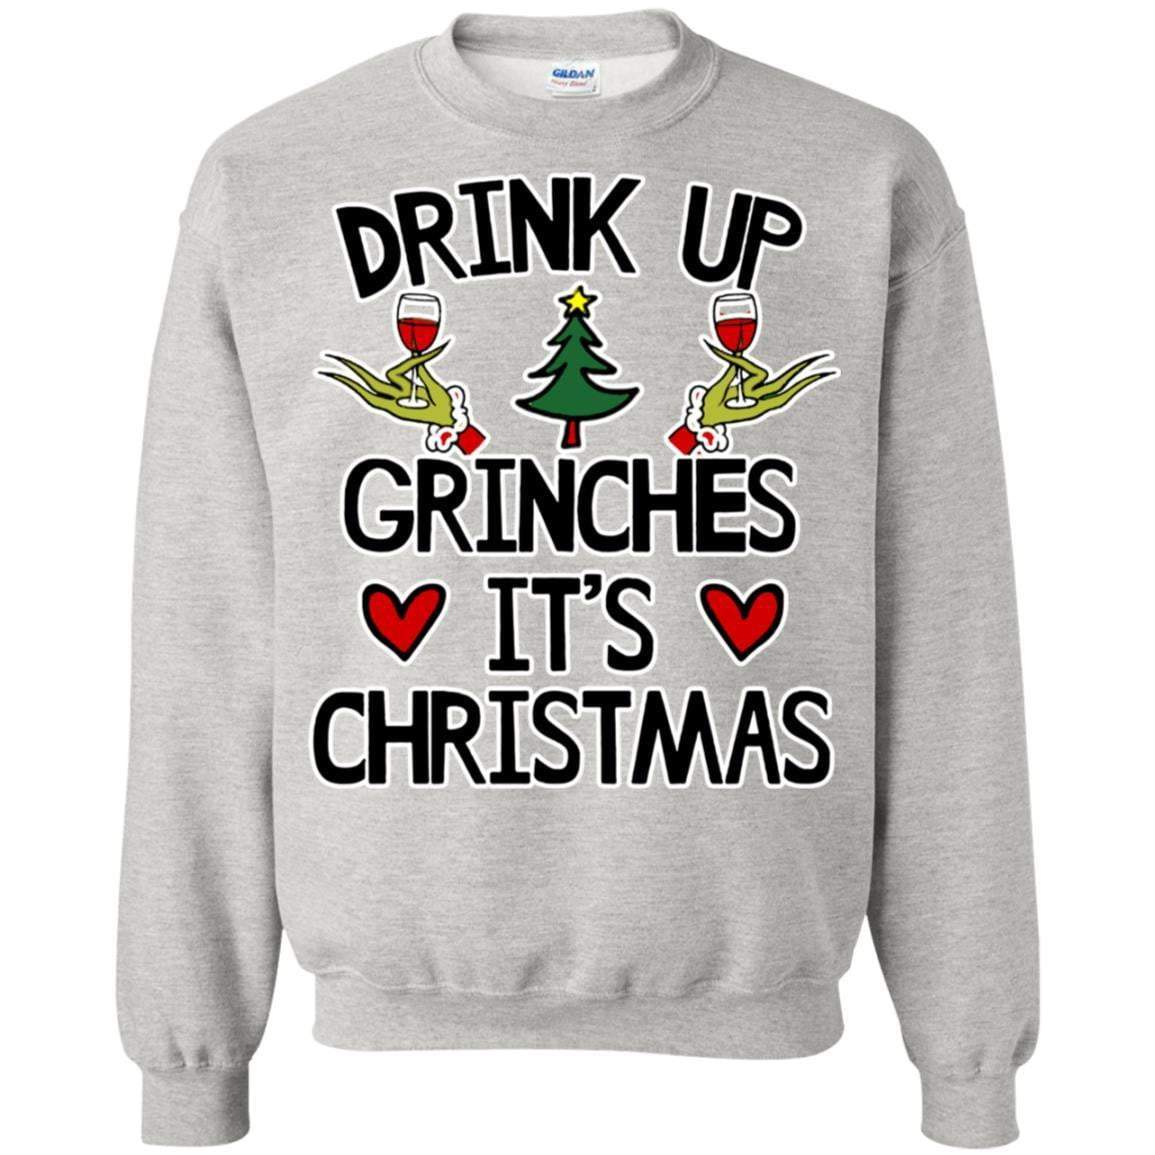 drink up grinches christmas ts and crews - Funny Christmas Sweater